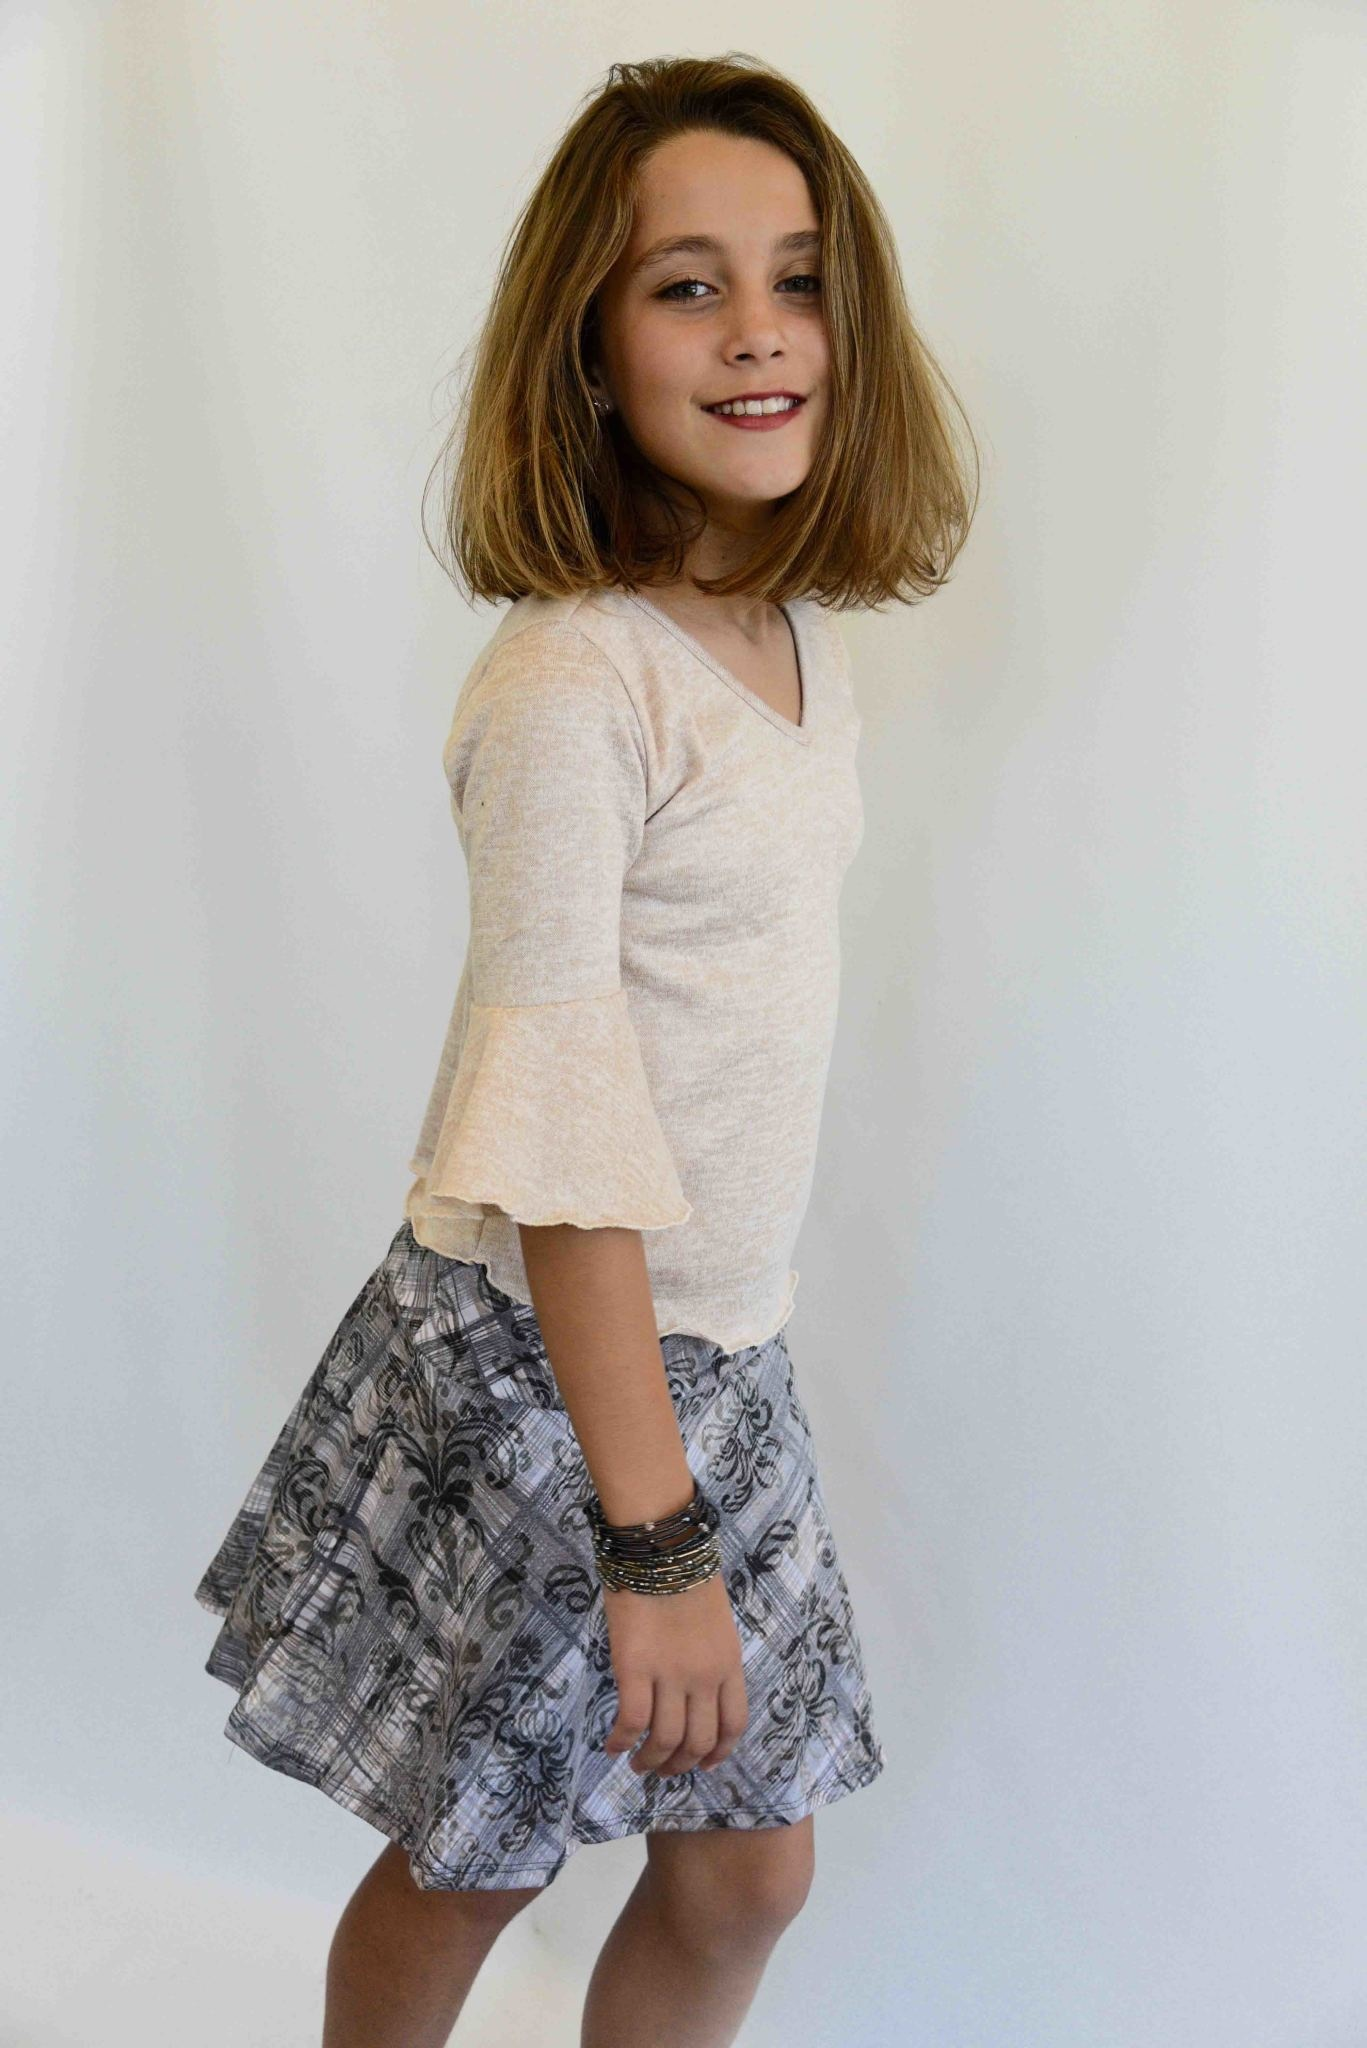 Area Code 407 Tween Fall Fashion Tops